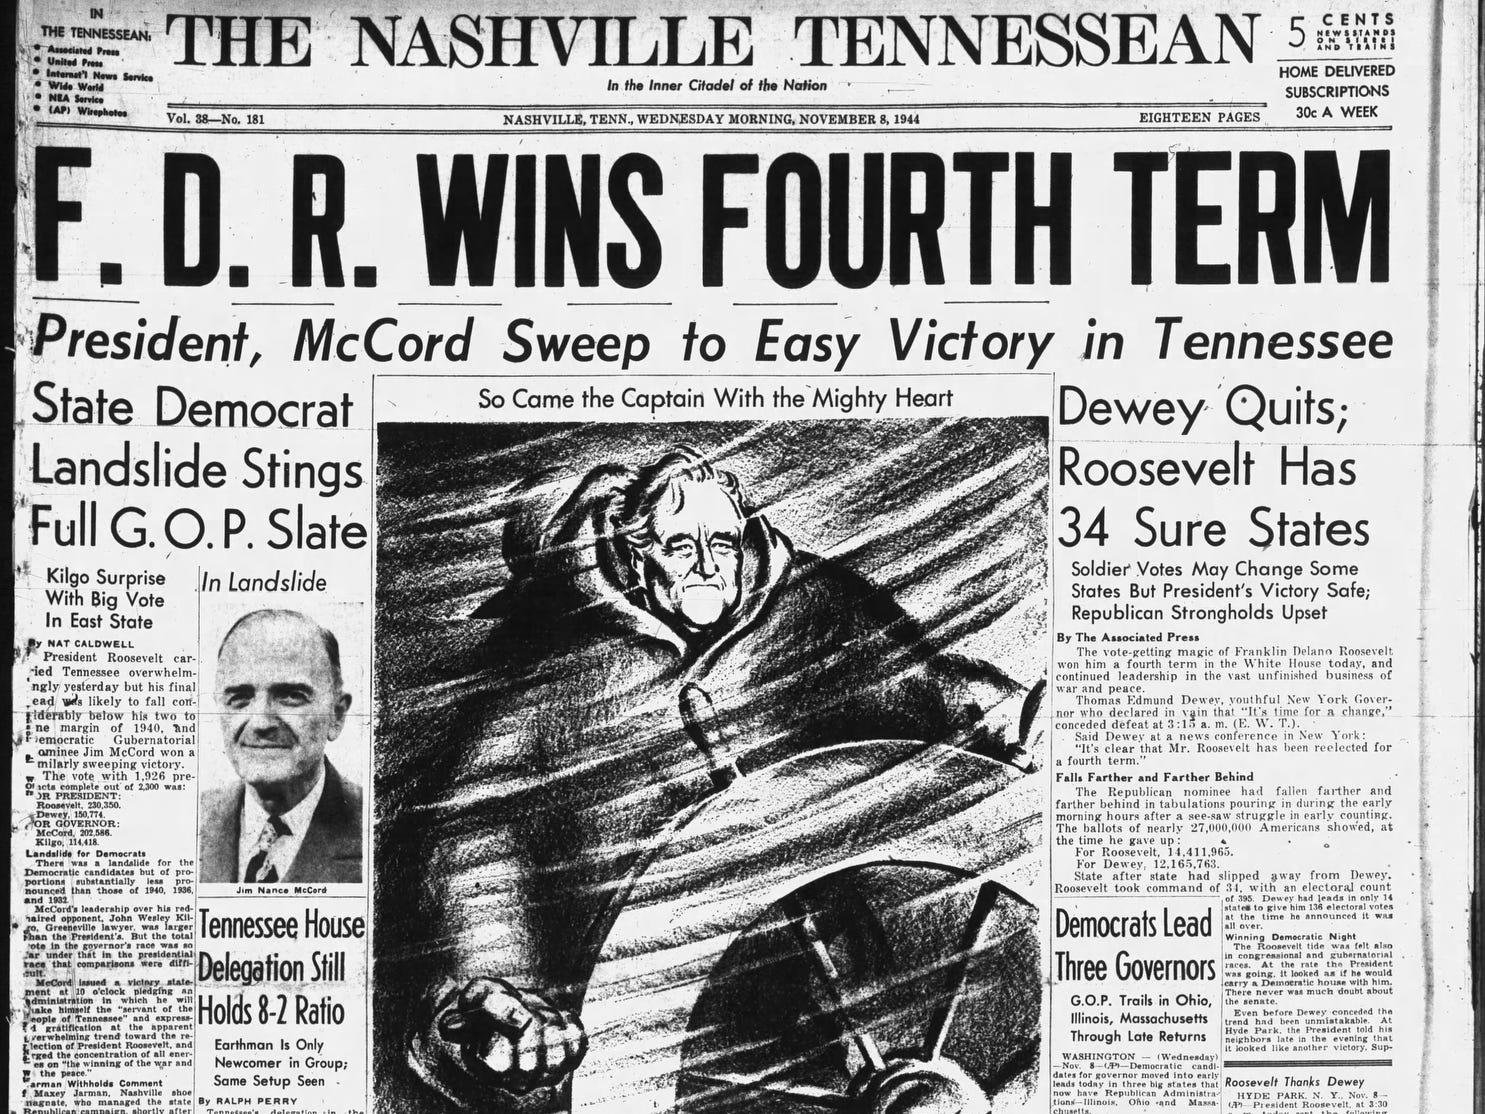 The front page of the Nov. 8, 1944 of The Tennessean which Franklin D. Roosevelt won the presidential election.